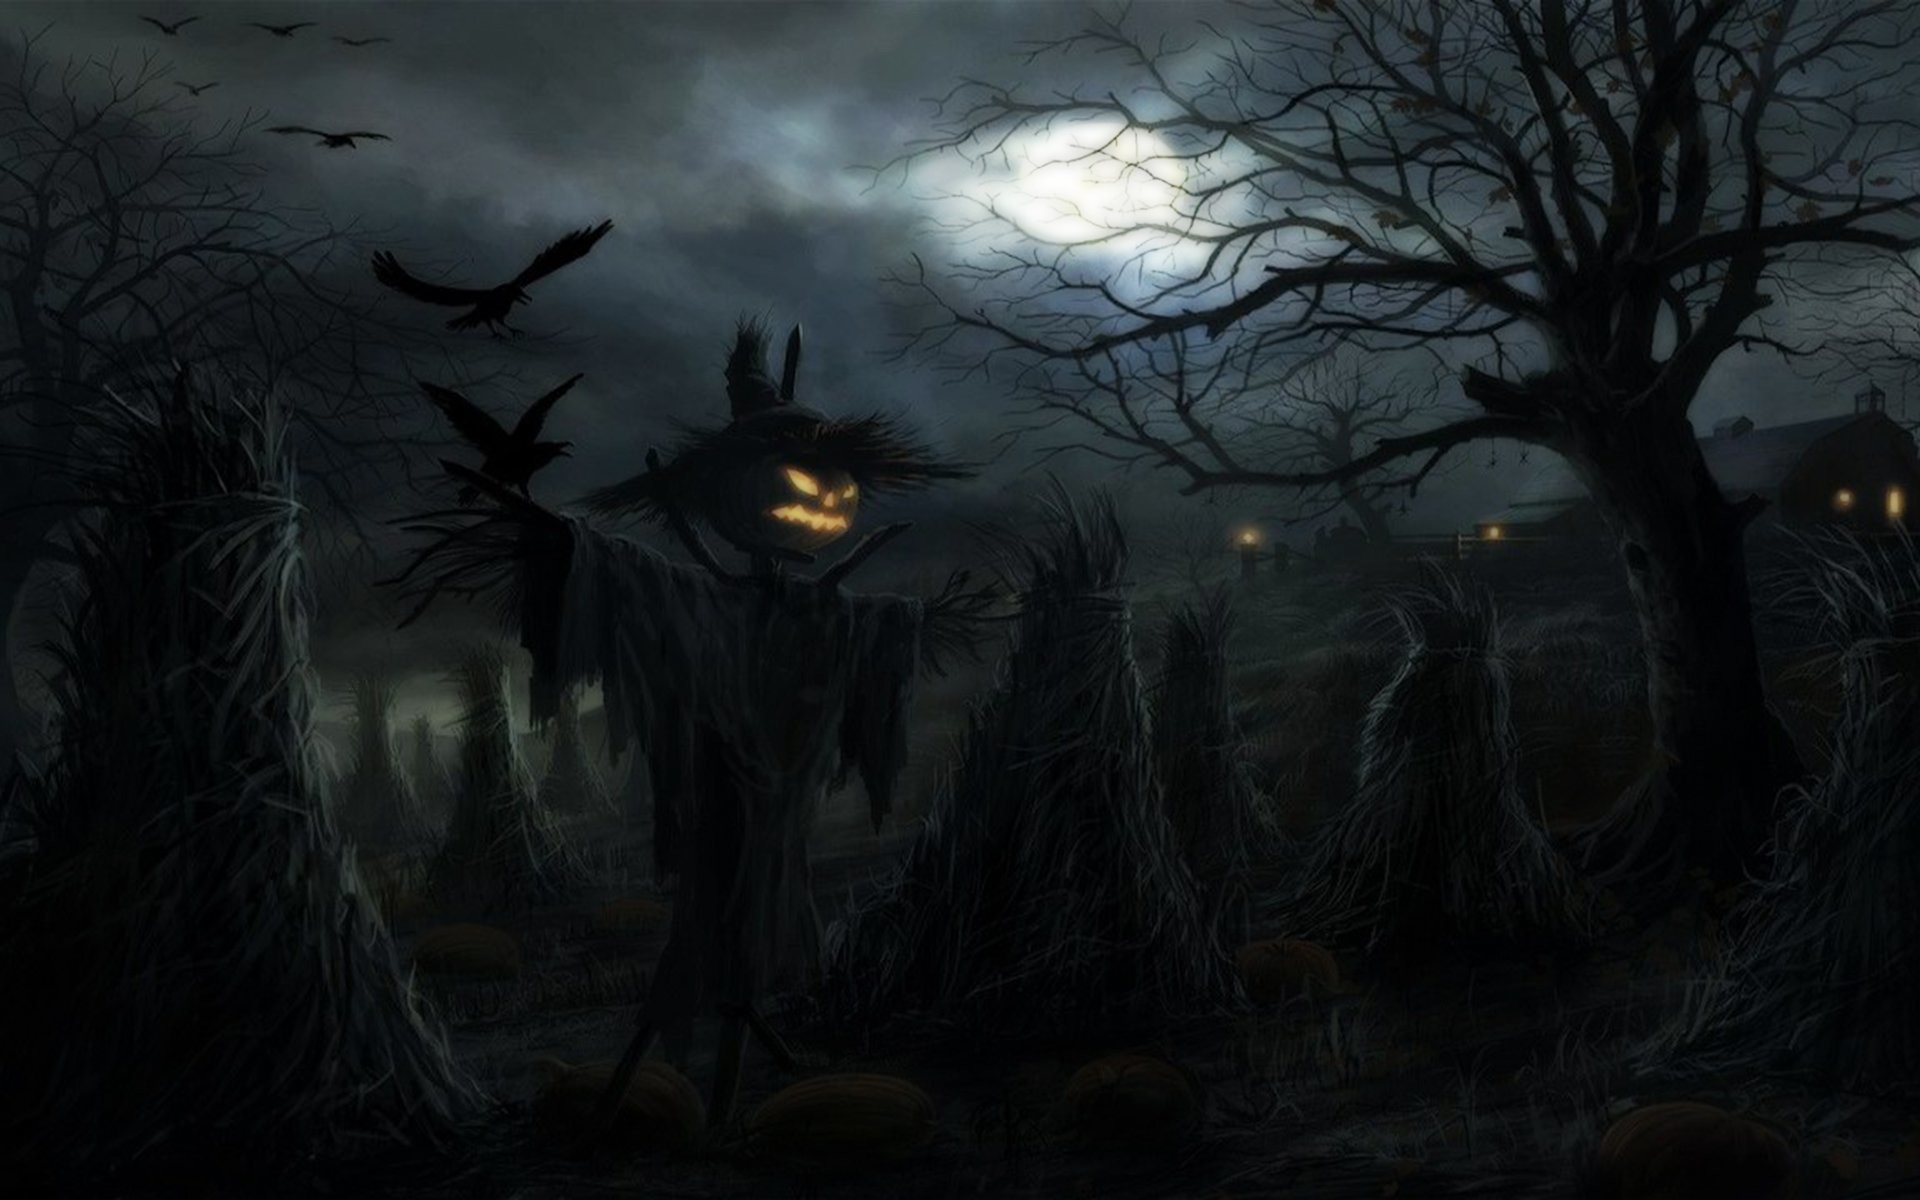 Scary Halloween 737663. SHARE. TAGS: Images Desktop …